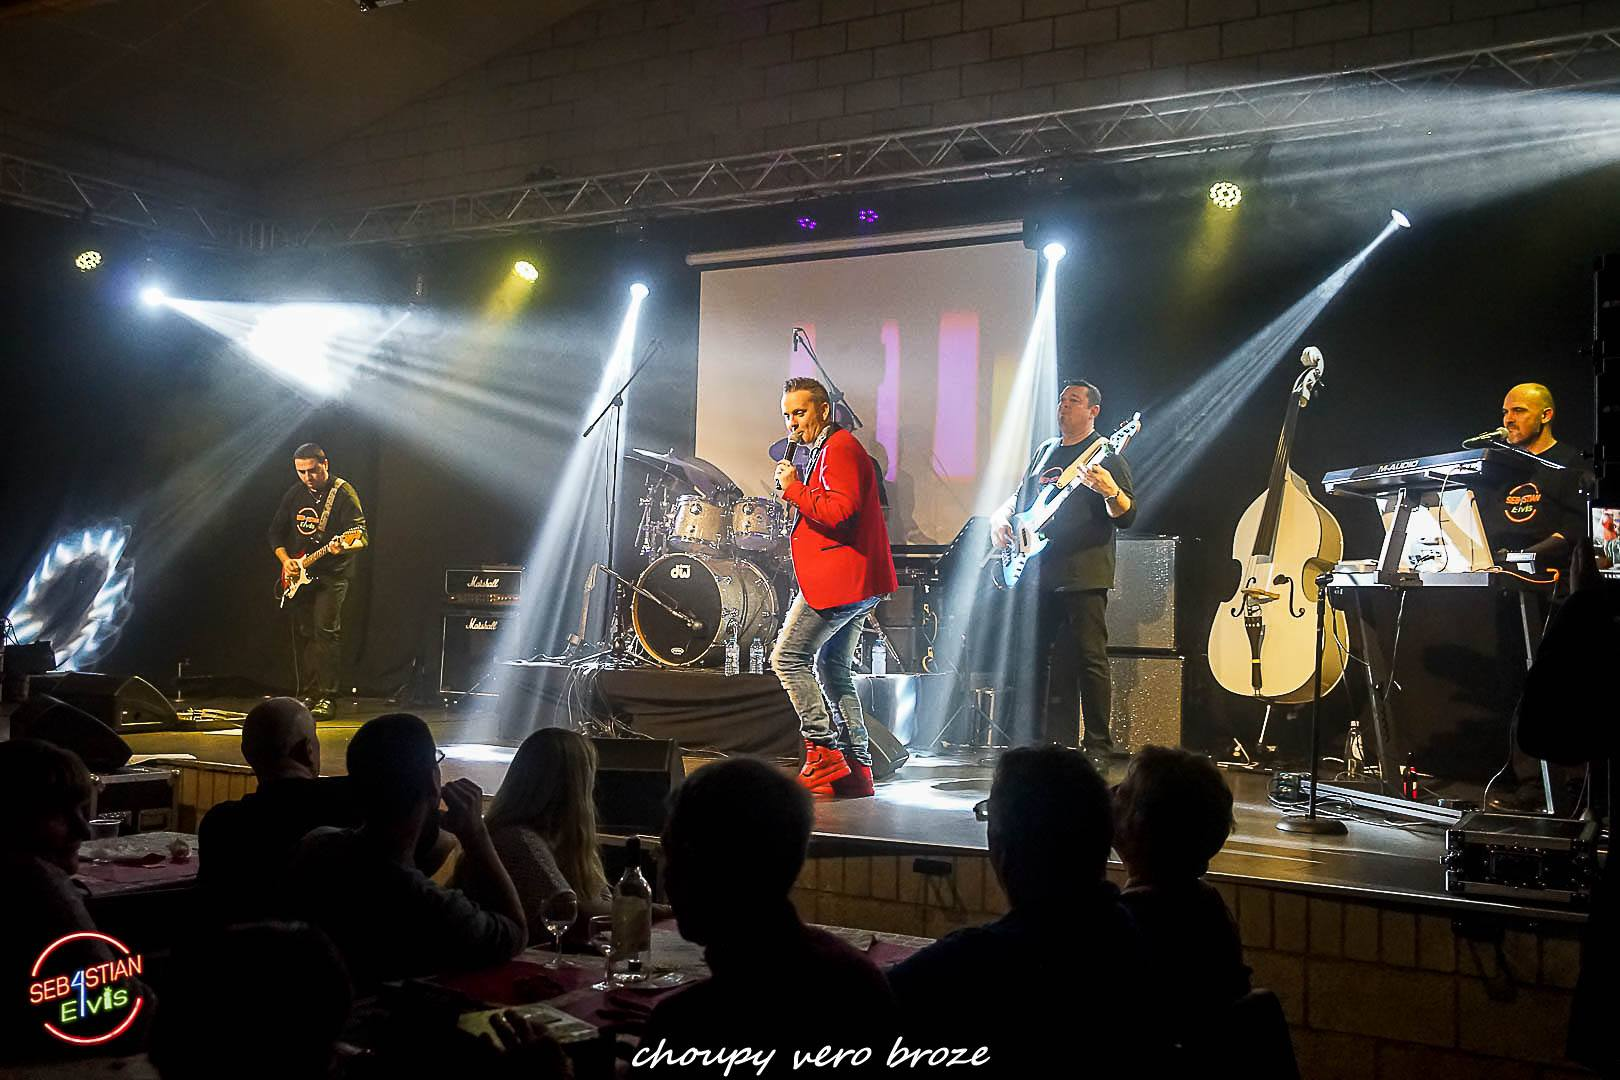 03-sebastian-for-elvis-tribute-elvis-presley-belgique-centre-culturel-rocourt-choupy-vero-broze.